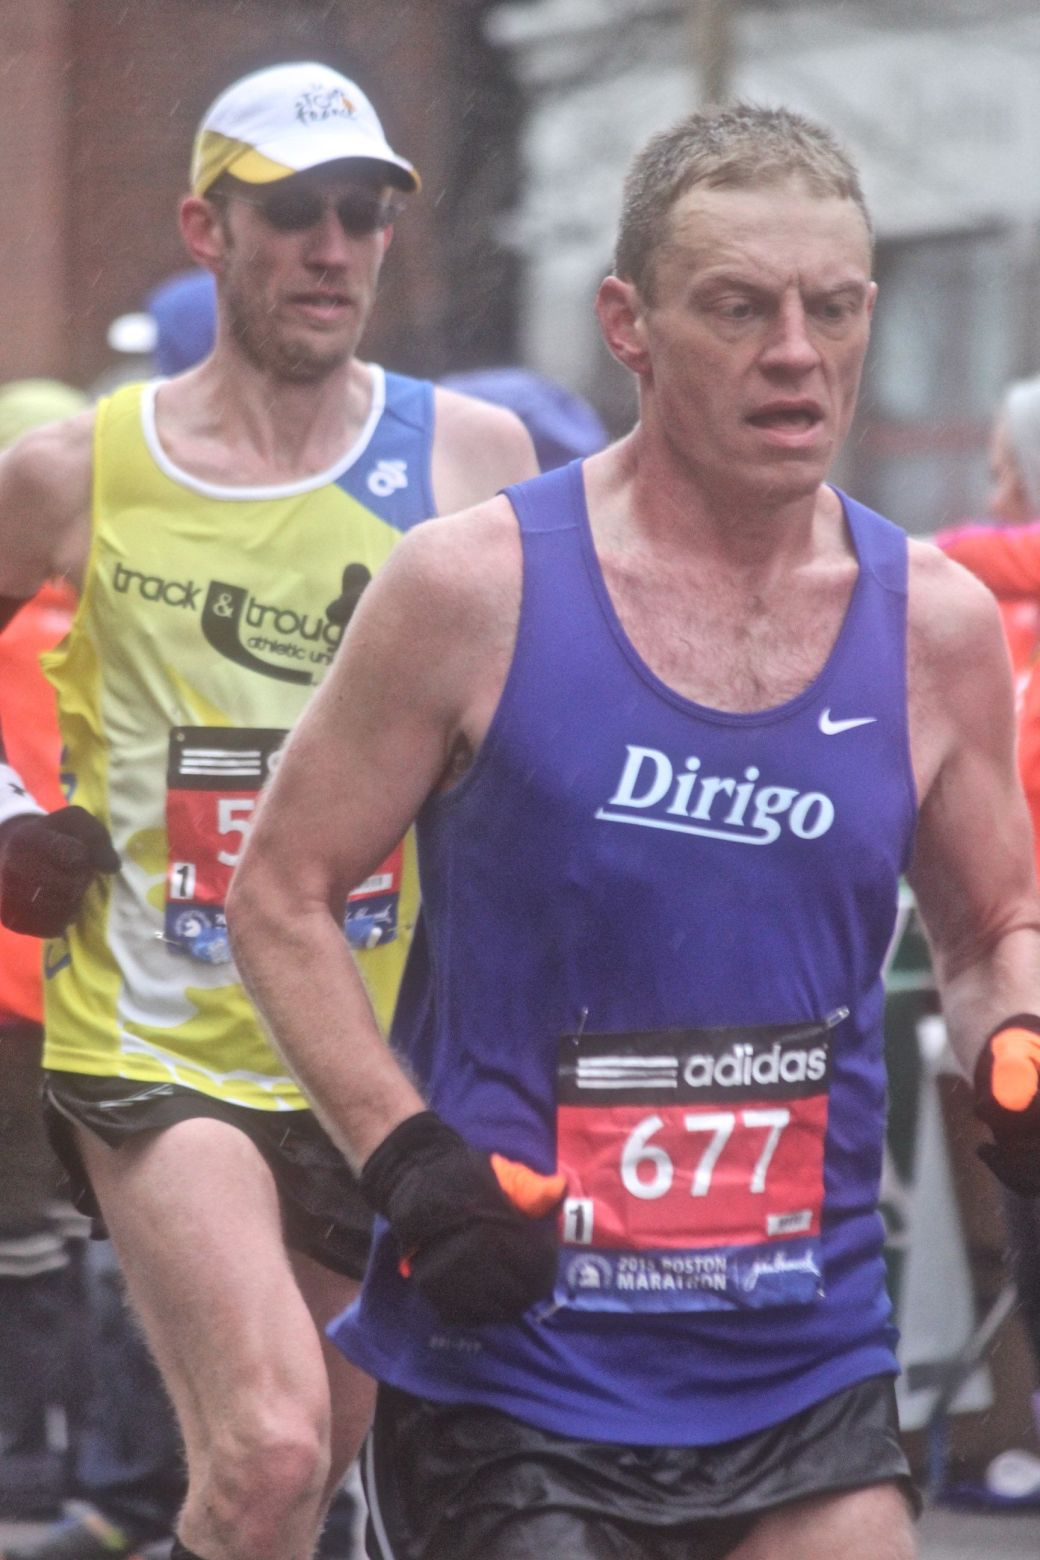 boston marathon april 20 2015 racer number 677